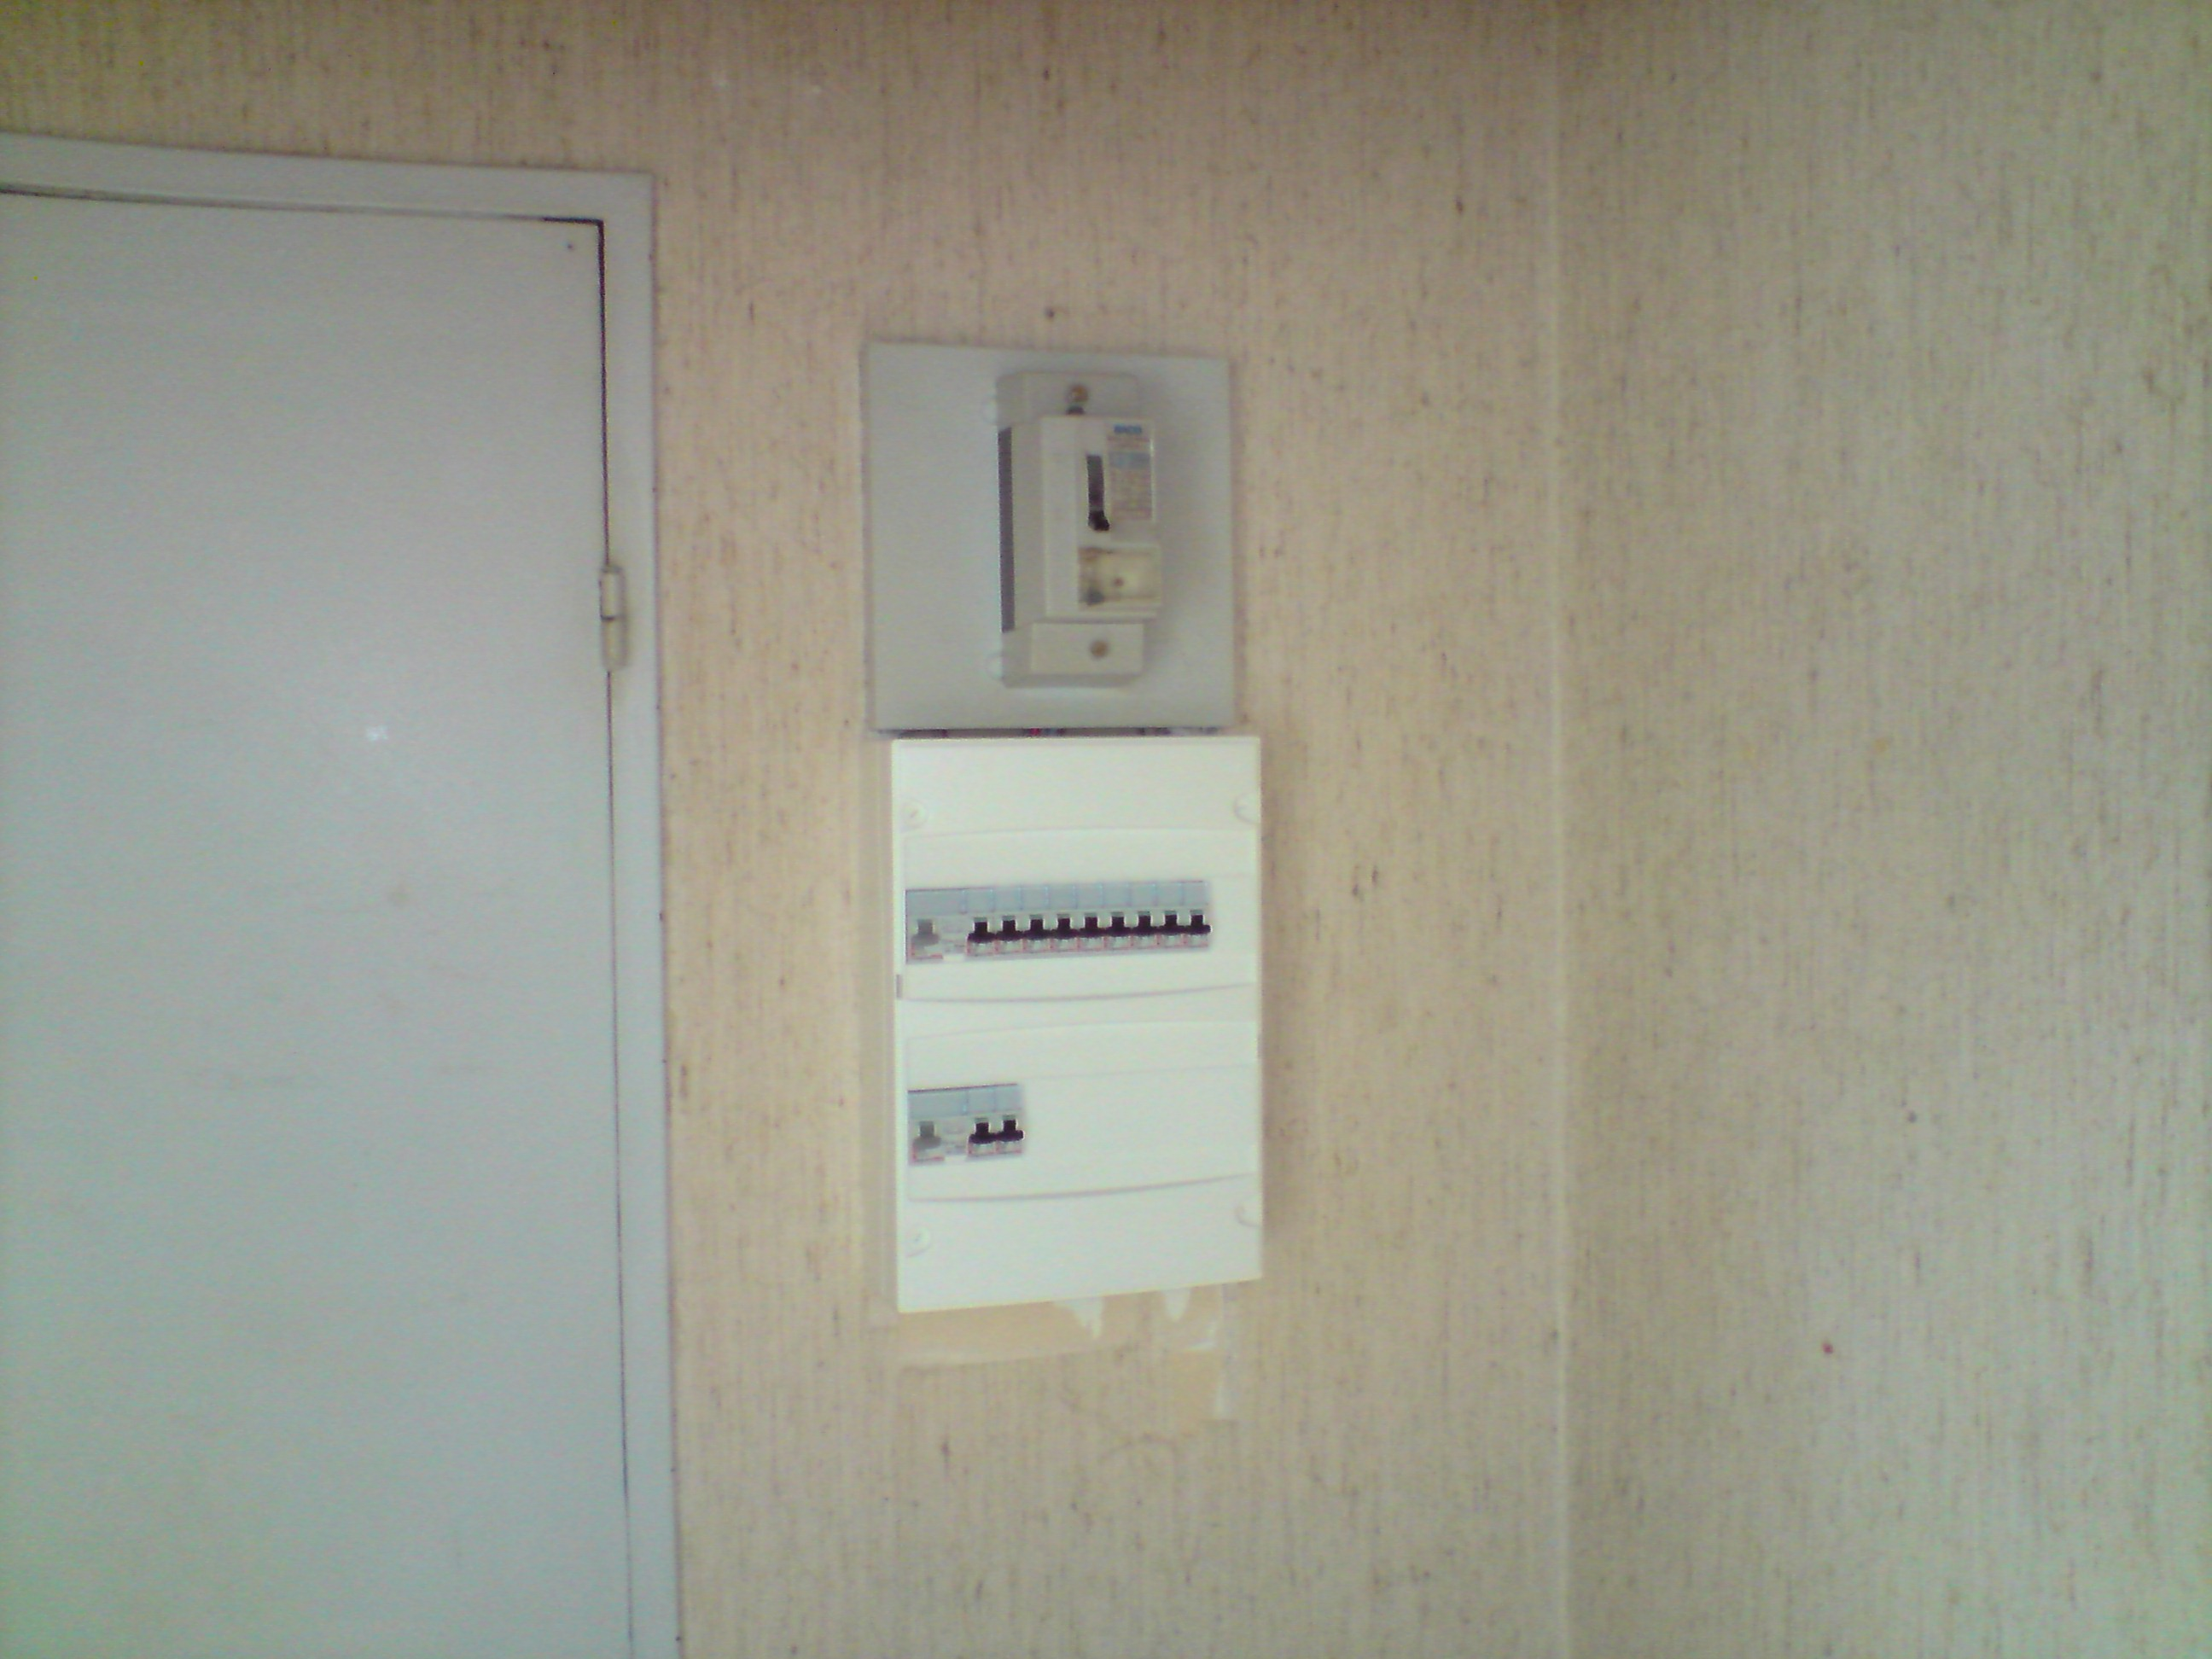 R novation d un appartement electricite - Comment enlever l electricite statique d un vetement ...